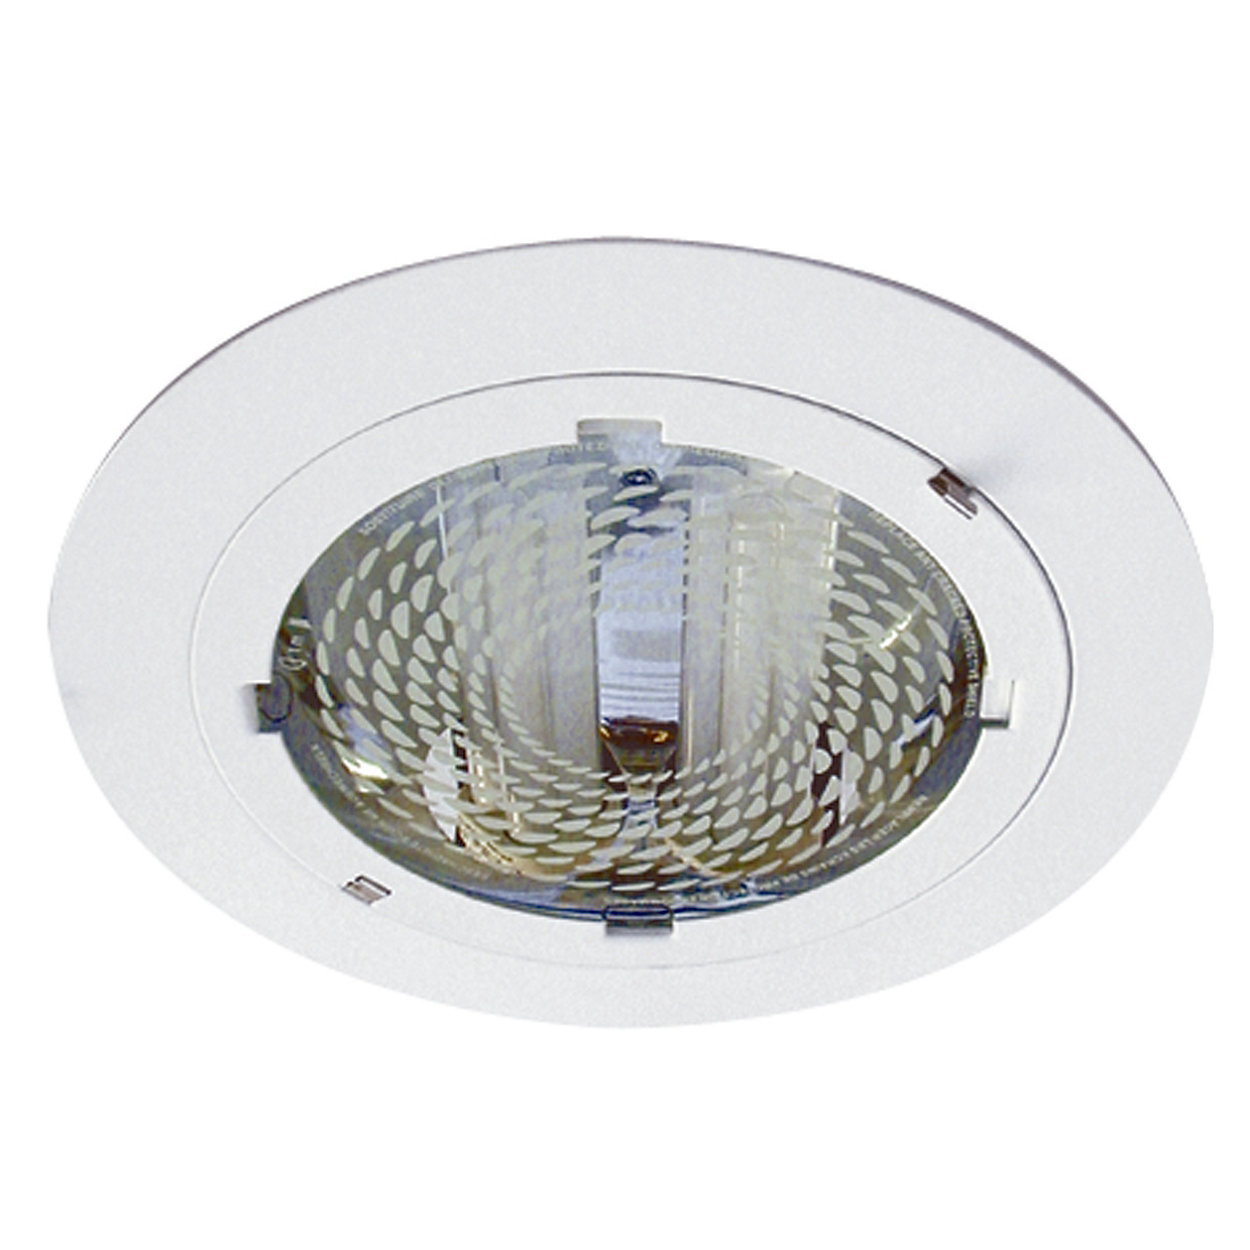 High light output and attractive design